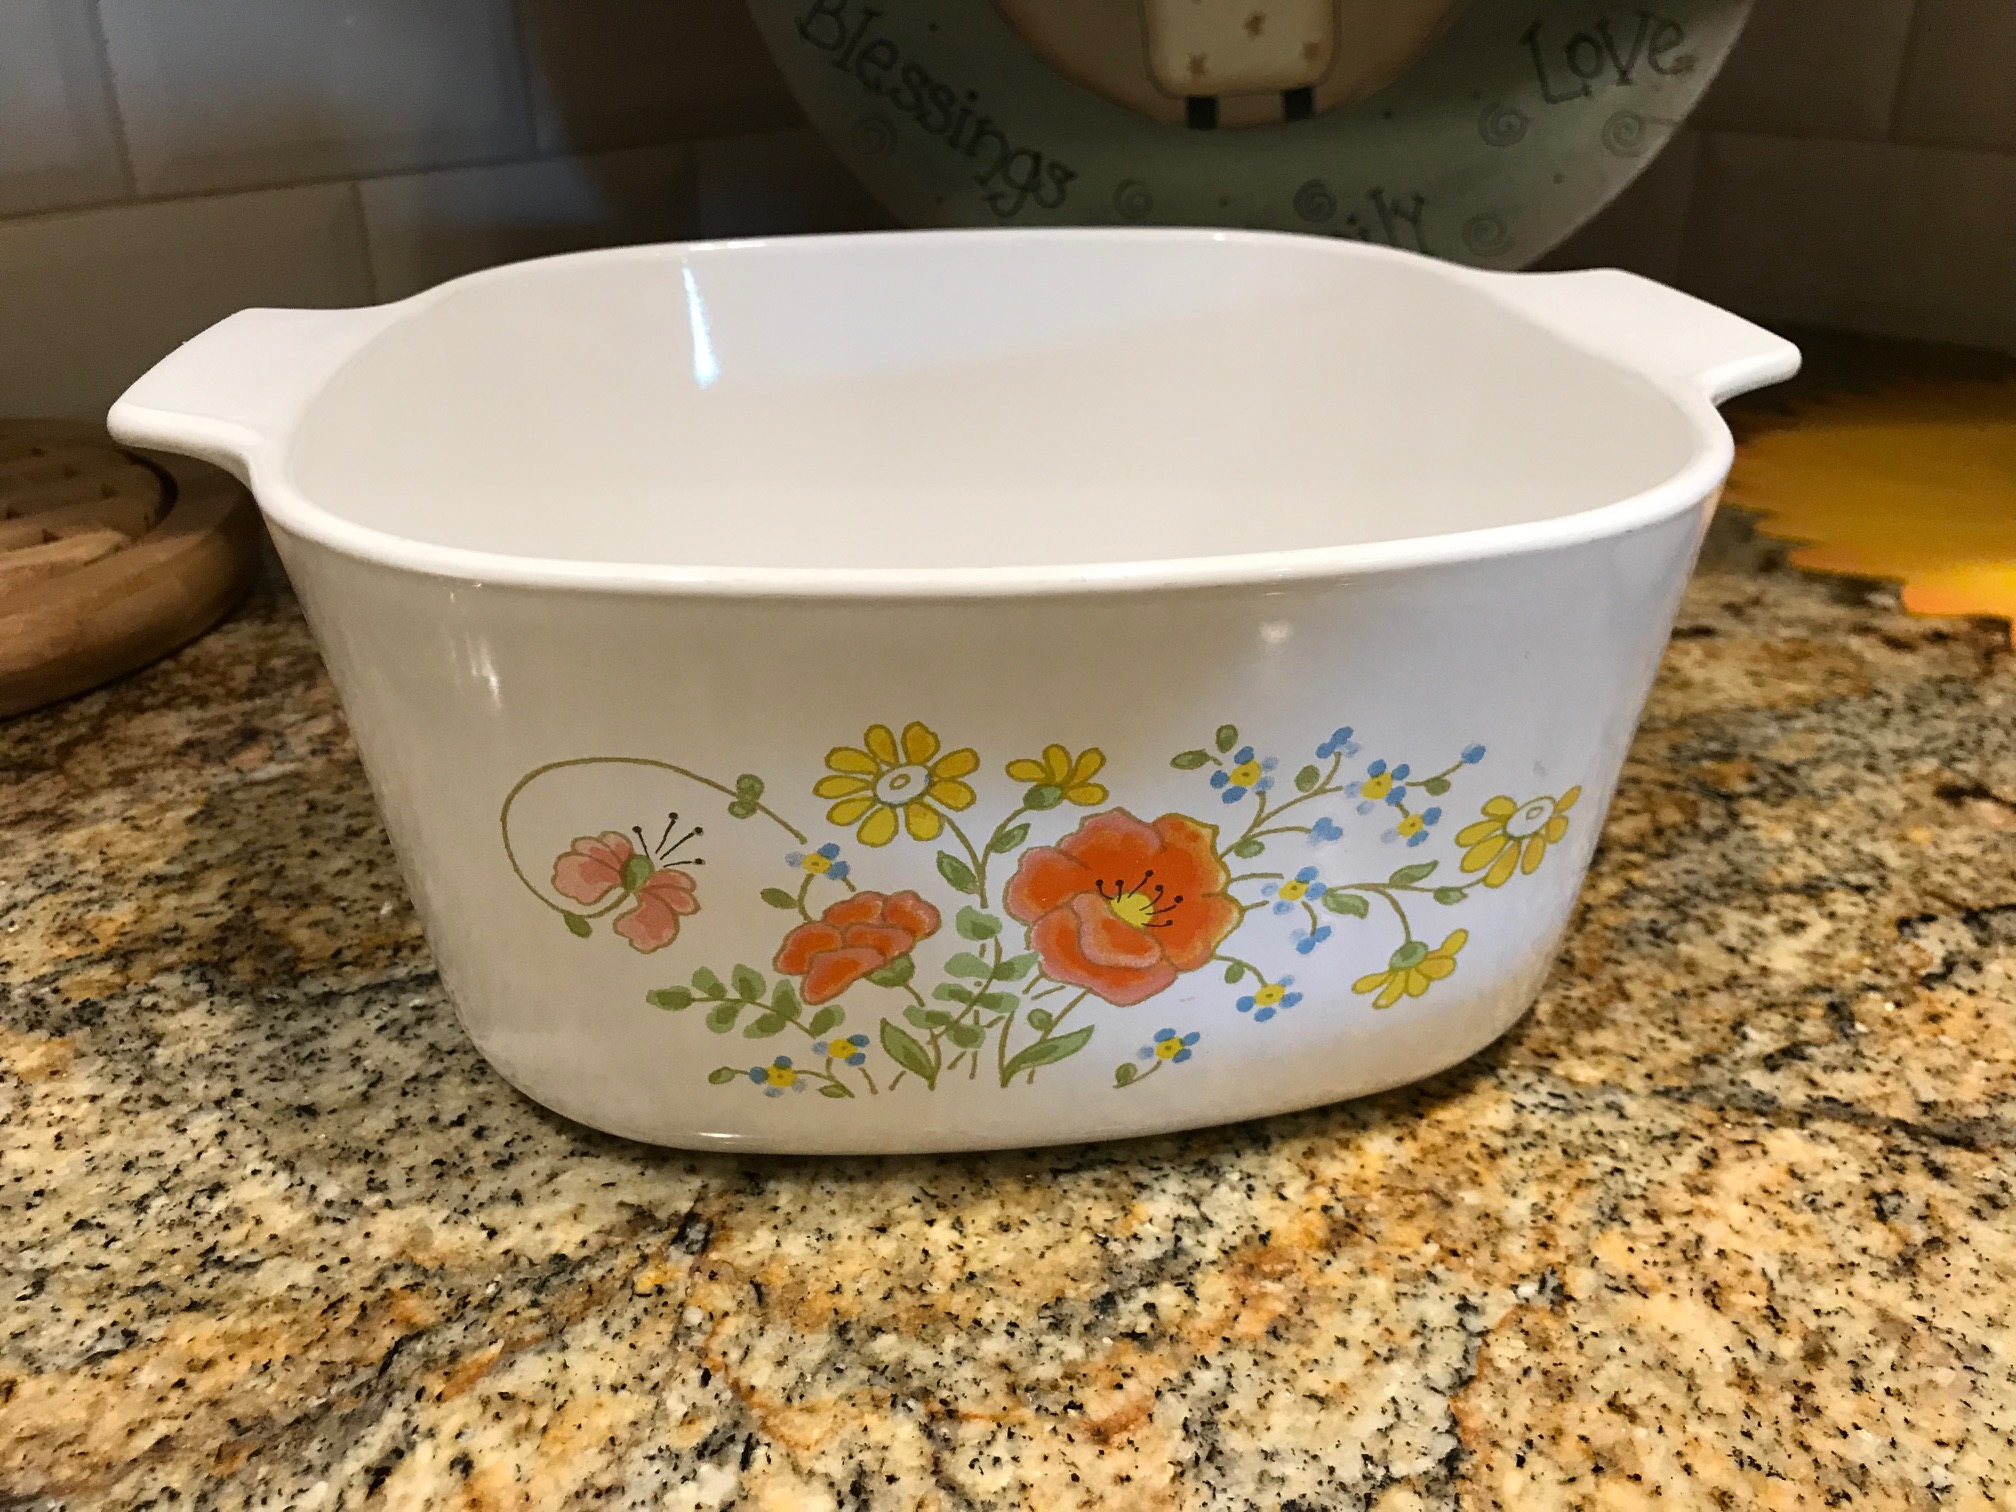 Corningware 3-Quart Casserole Dish with Floral Pattern: 29,900 ppm Lead + 602 ppm Cadmium [For context, 90 ppm Lead is considered unsafe in items for kids.]